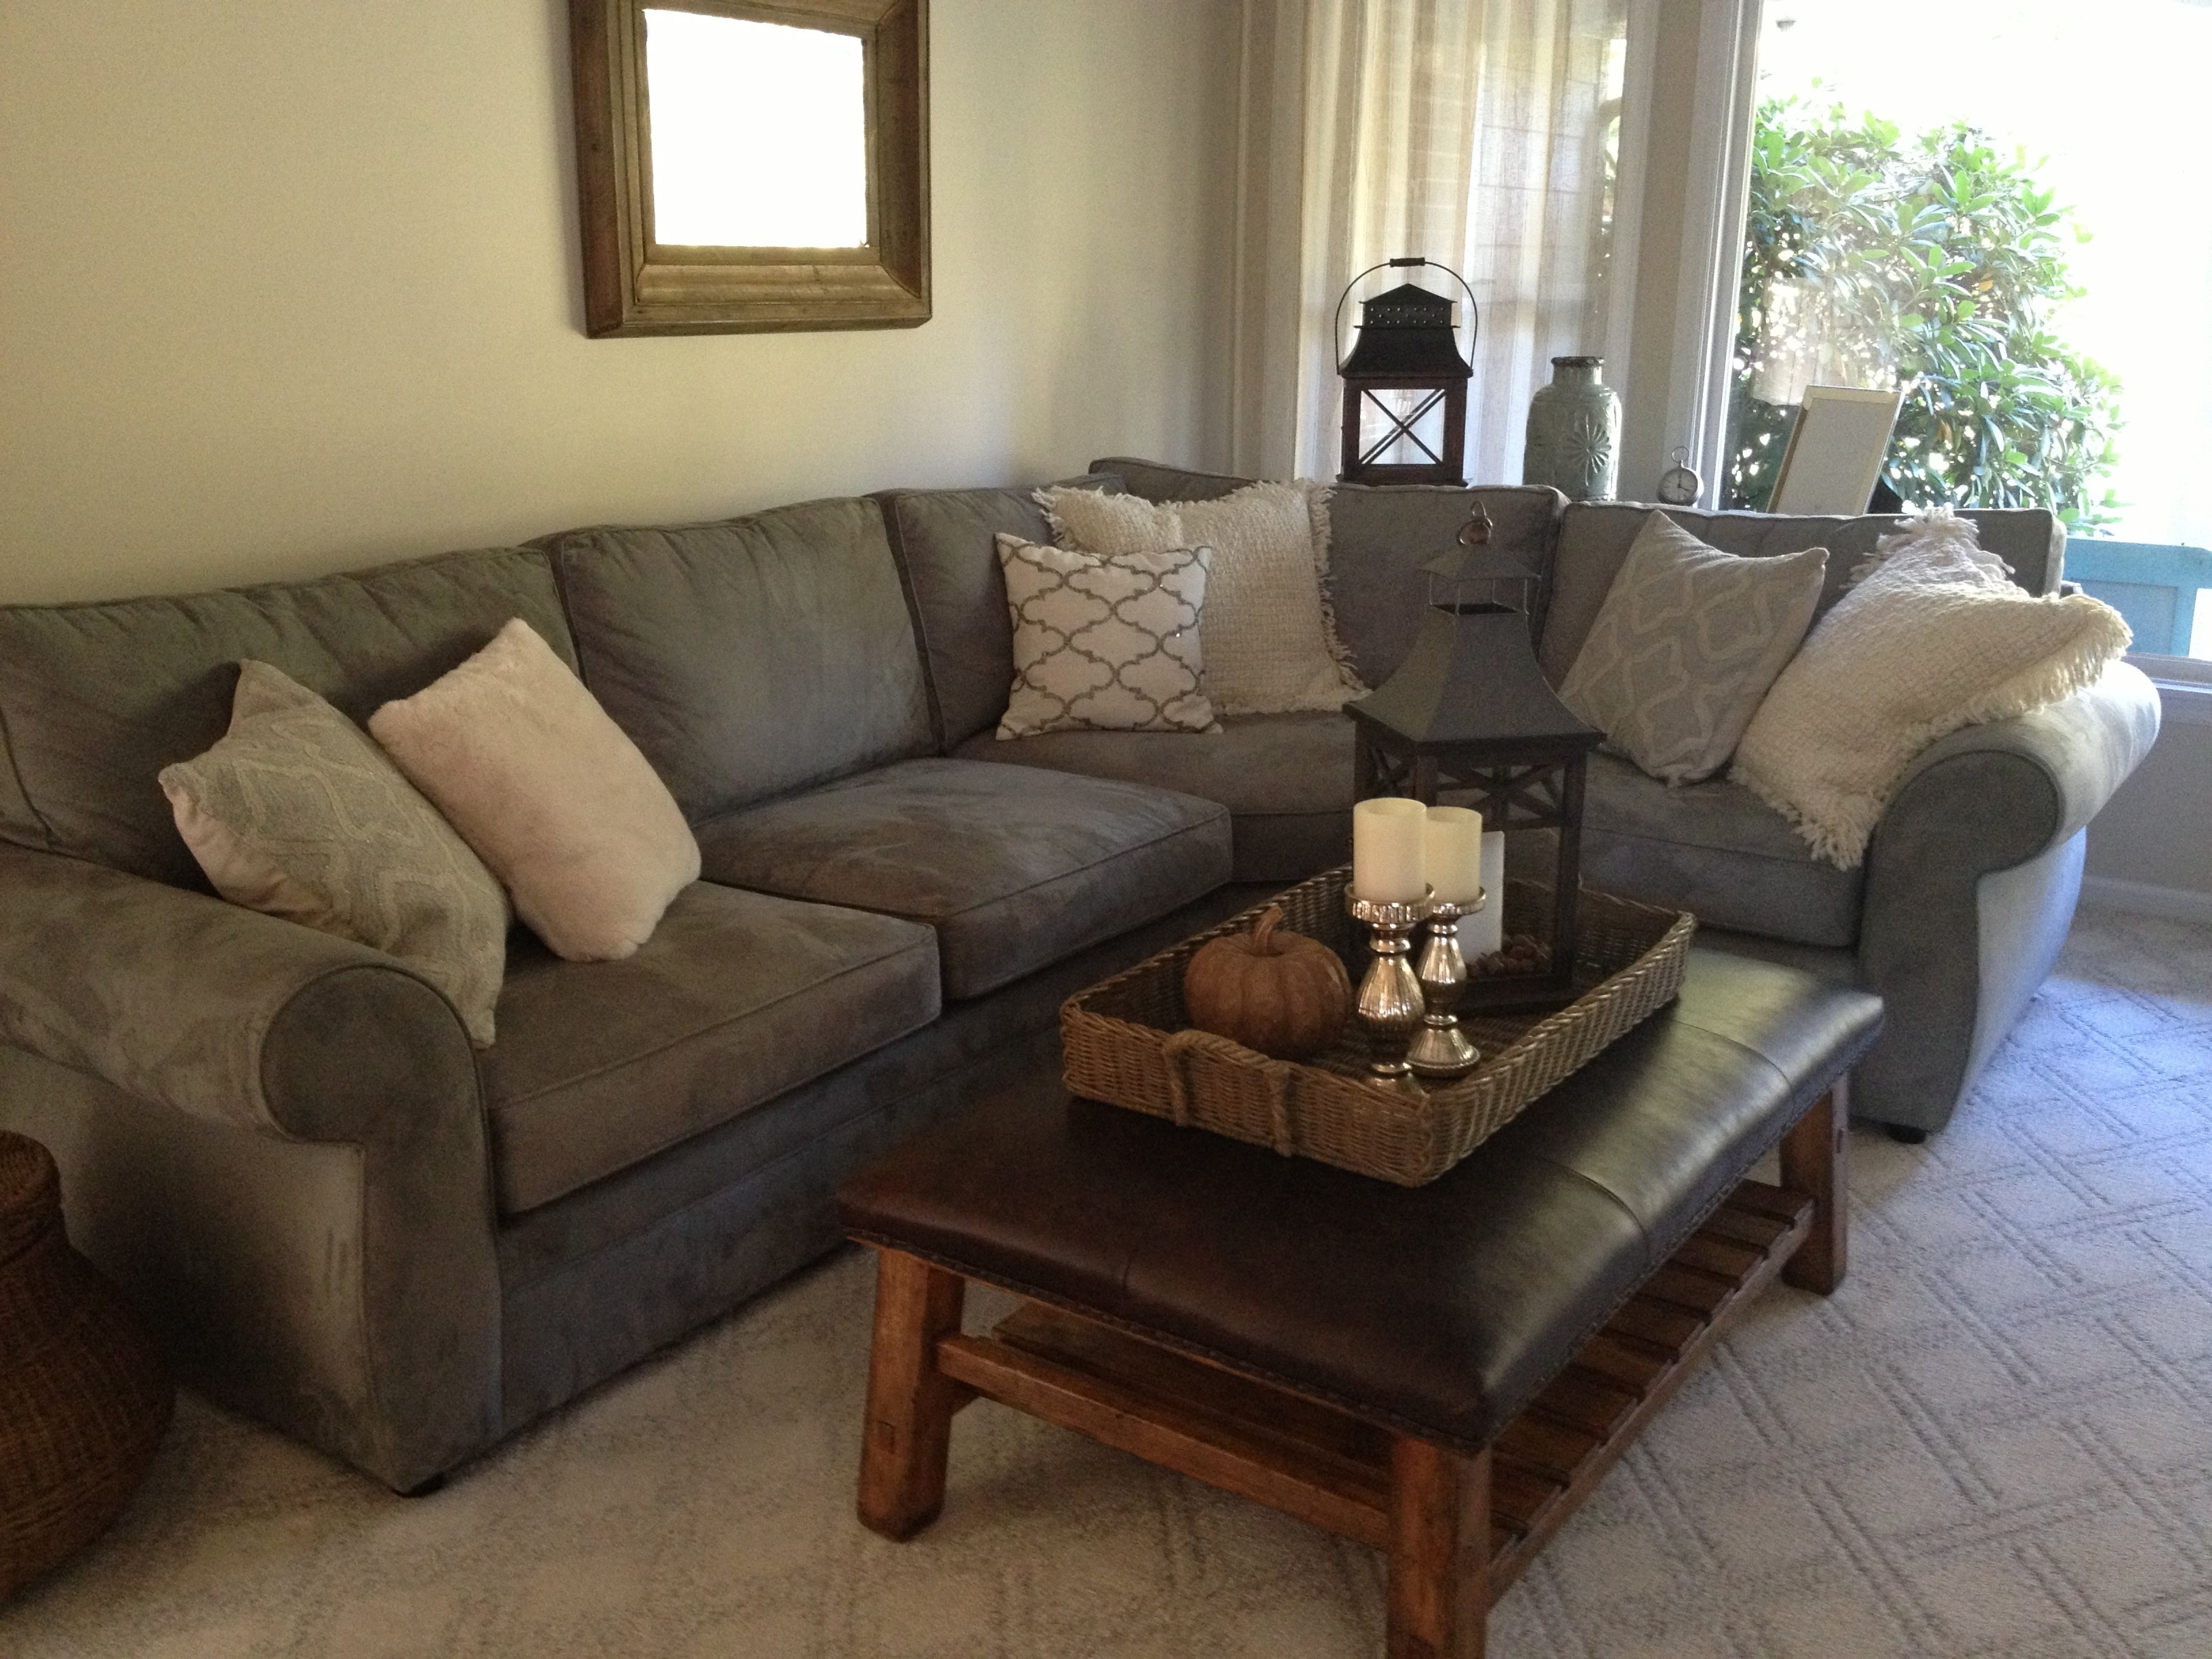 Pottery Barn Sectional Sofas For Famous Pottery Barn Pearce Couch (View 10 of 20)